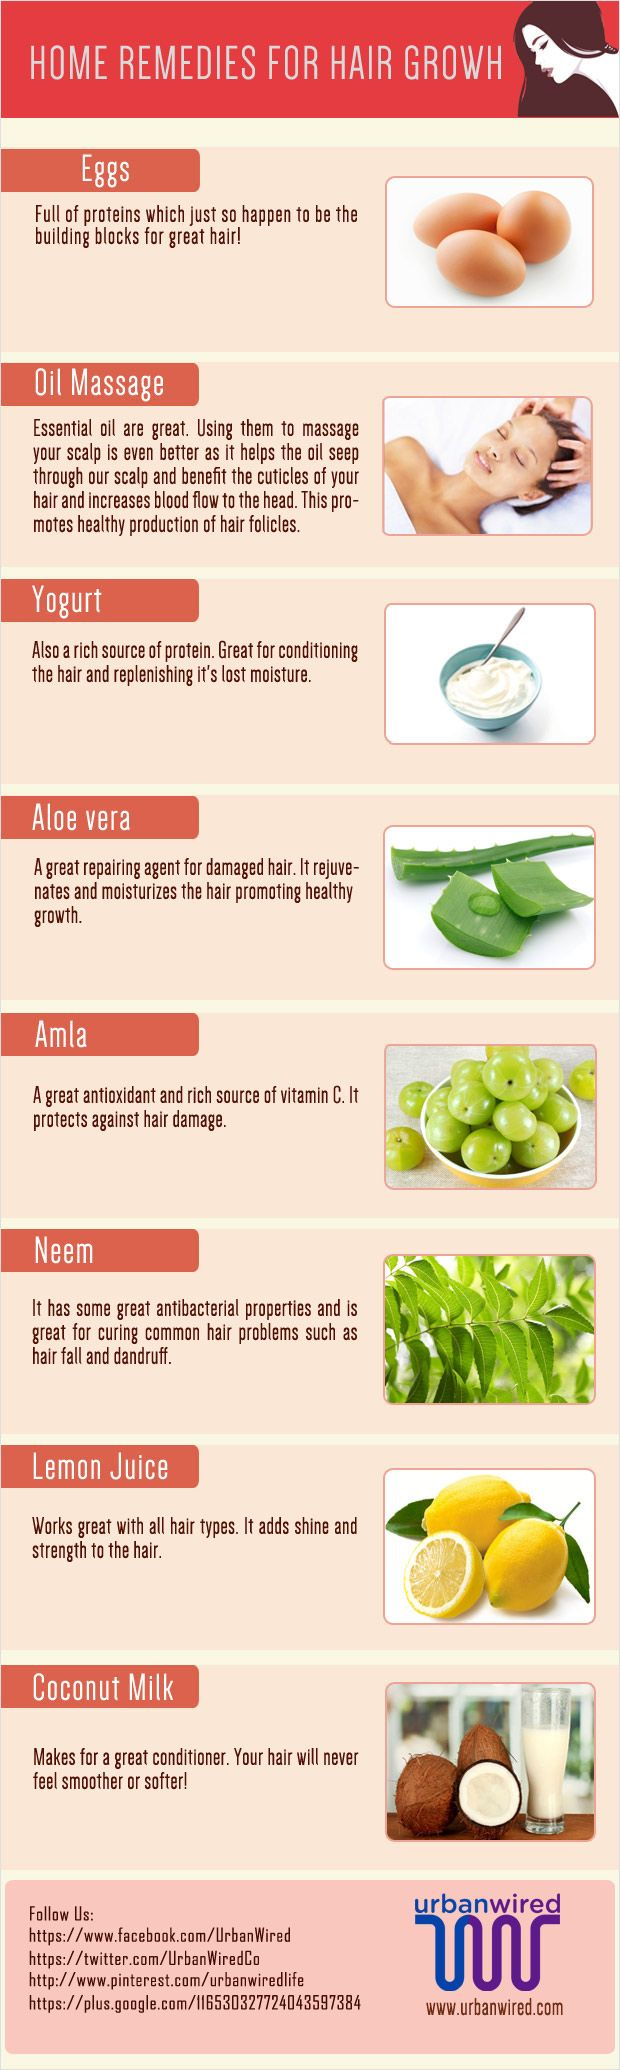 8 Effective Home Remedies for Hair Growth, Strength and Glow ...